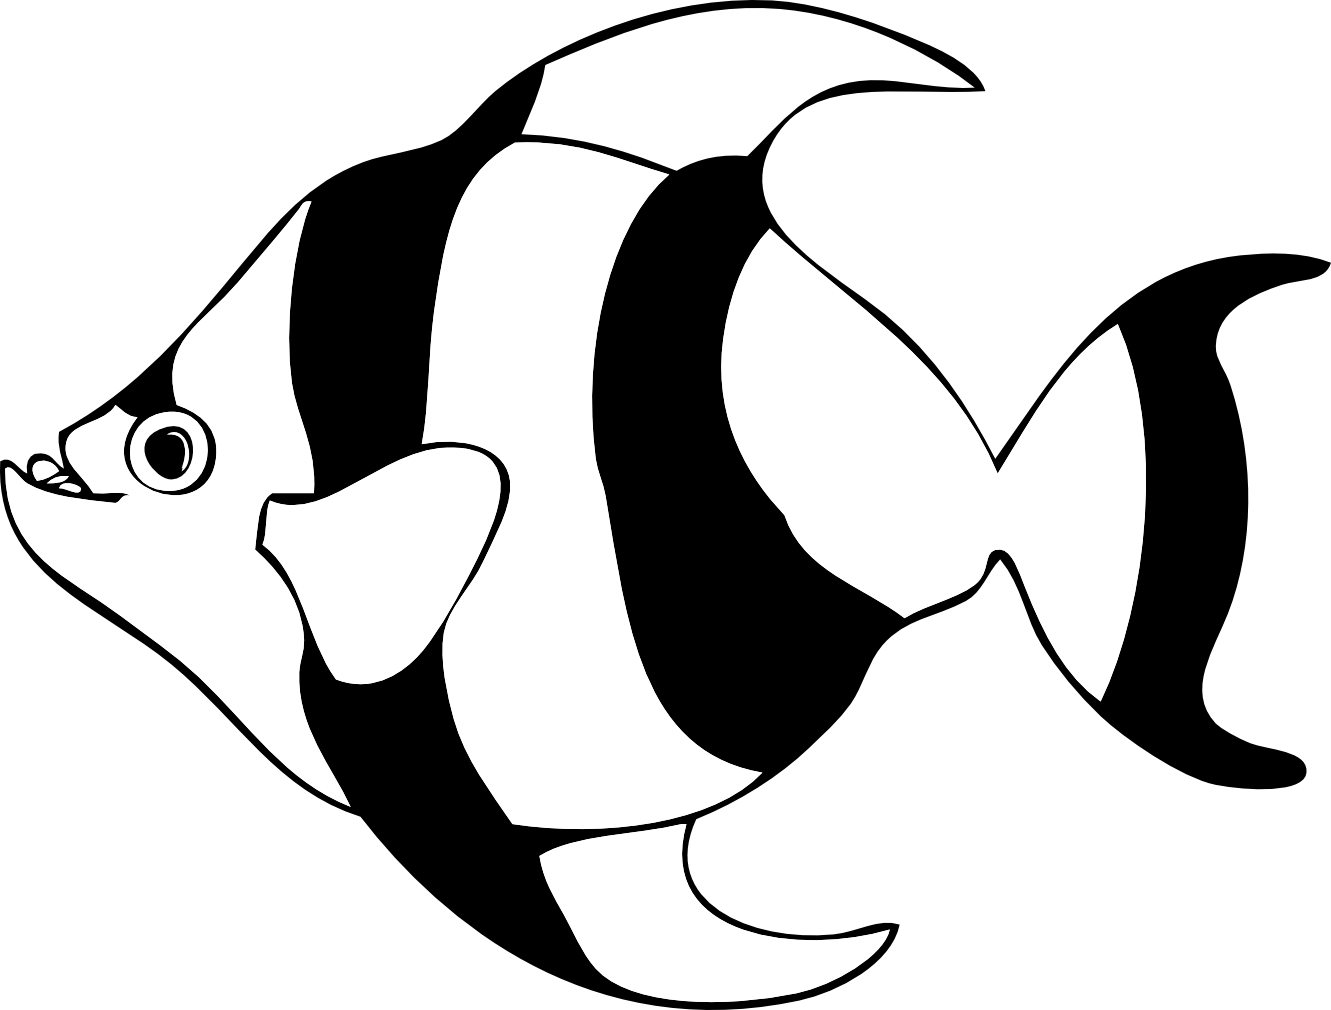 tropical fish striped black and white clipart